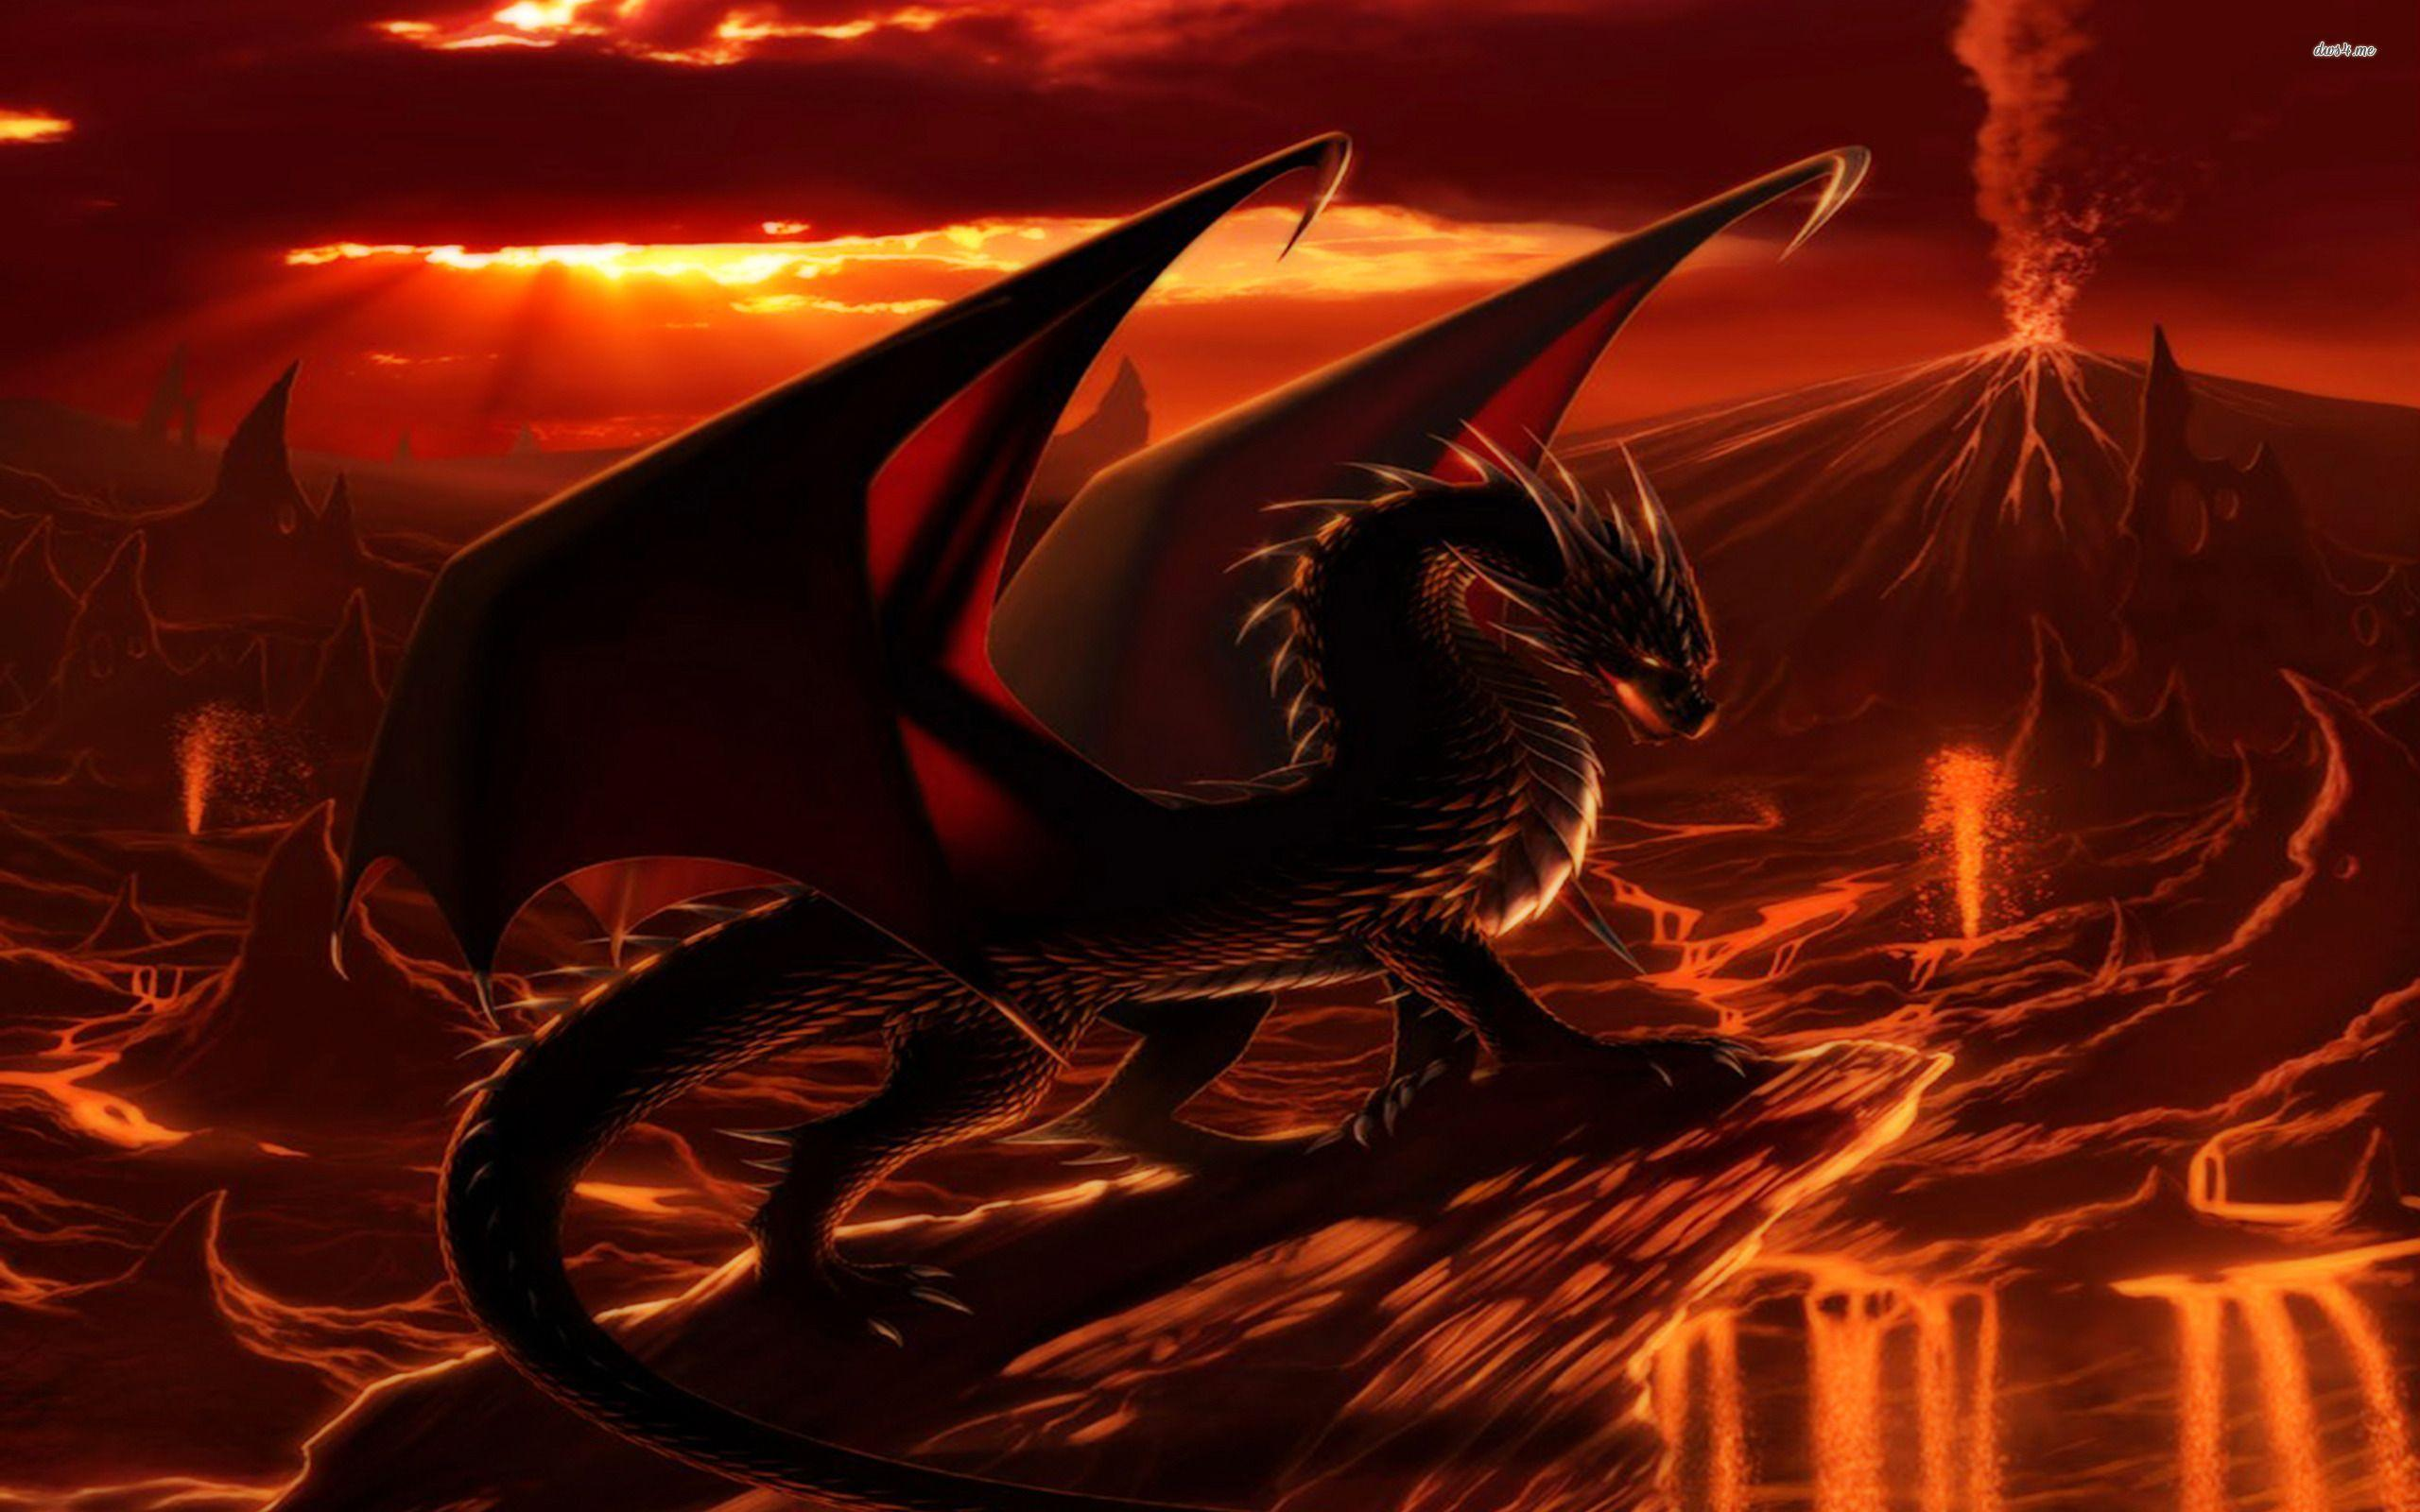 26 best dragon wallpapers images on Pinterest Dragons, Kite and Dragon pictures for desktop